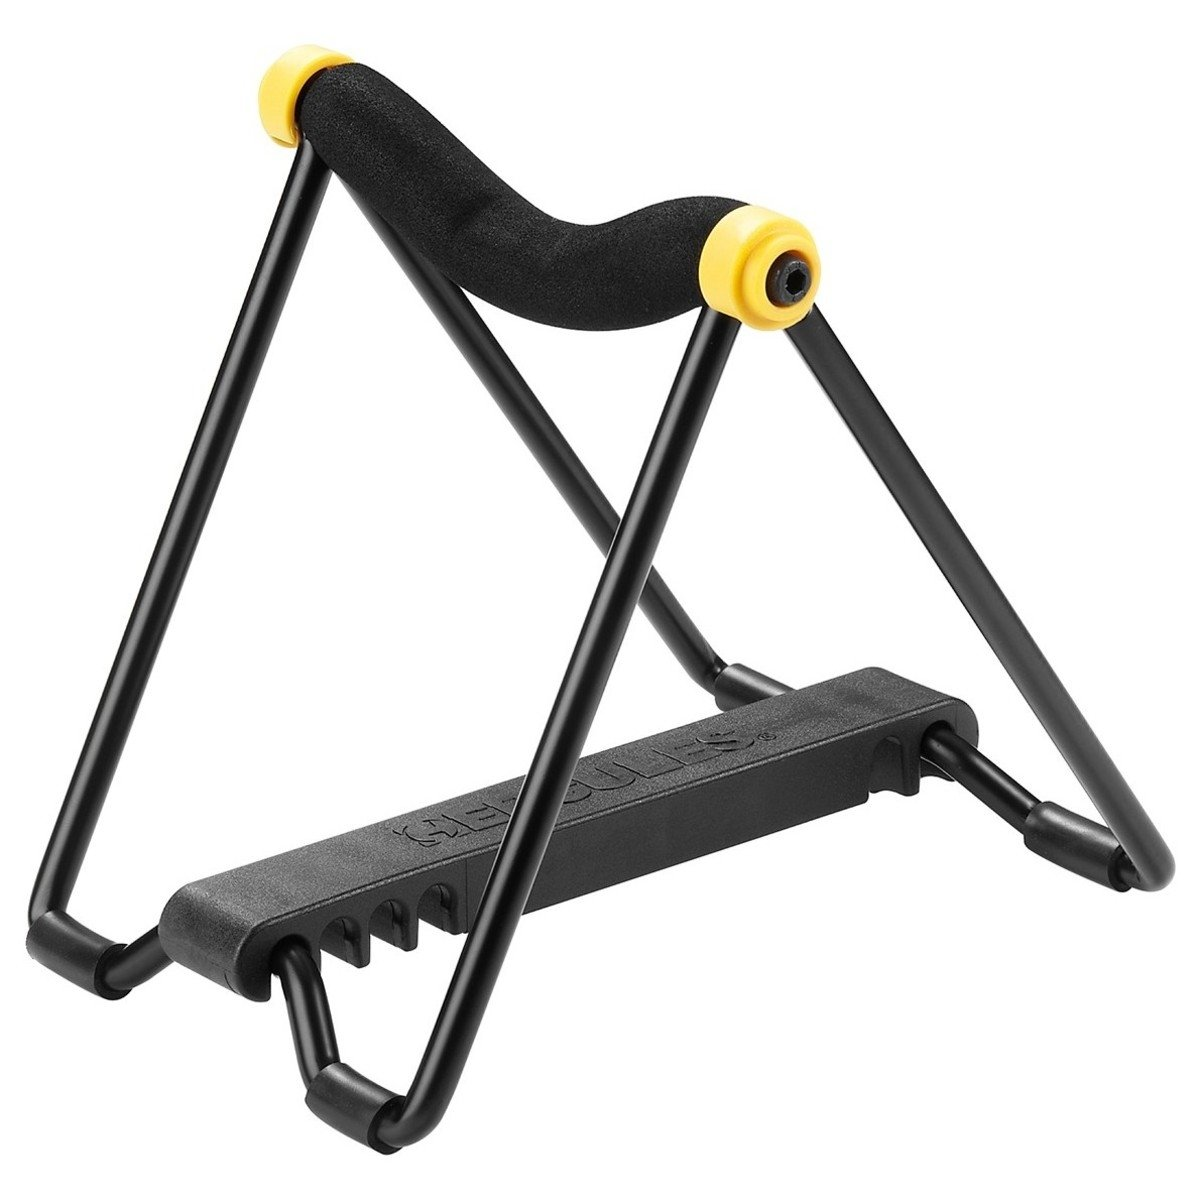 Hercules HA206 Guitar Neck Maintenance Cradle - FREE DELIVERY